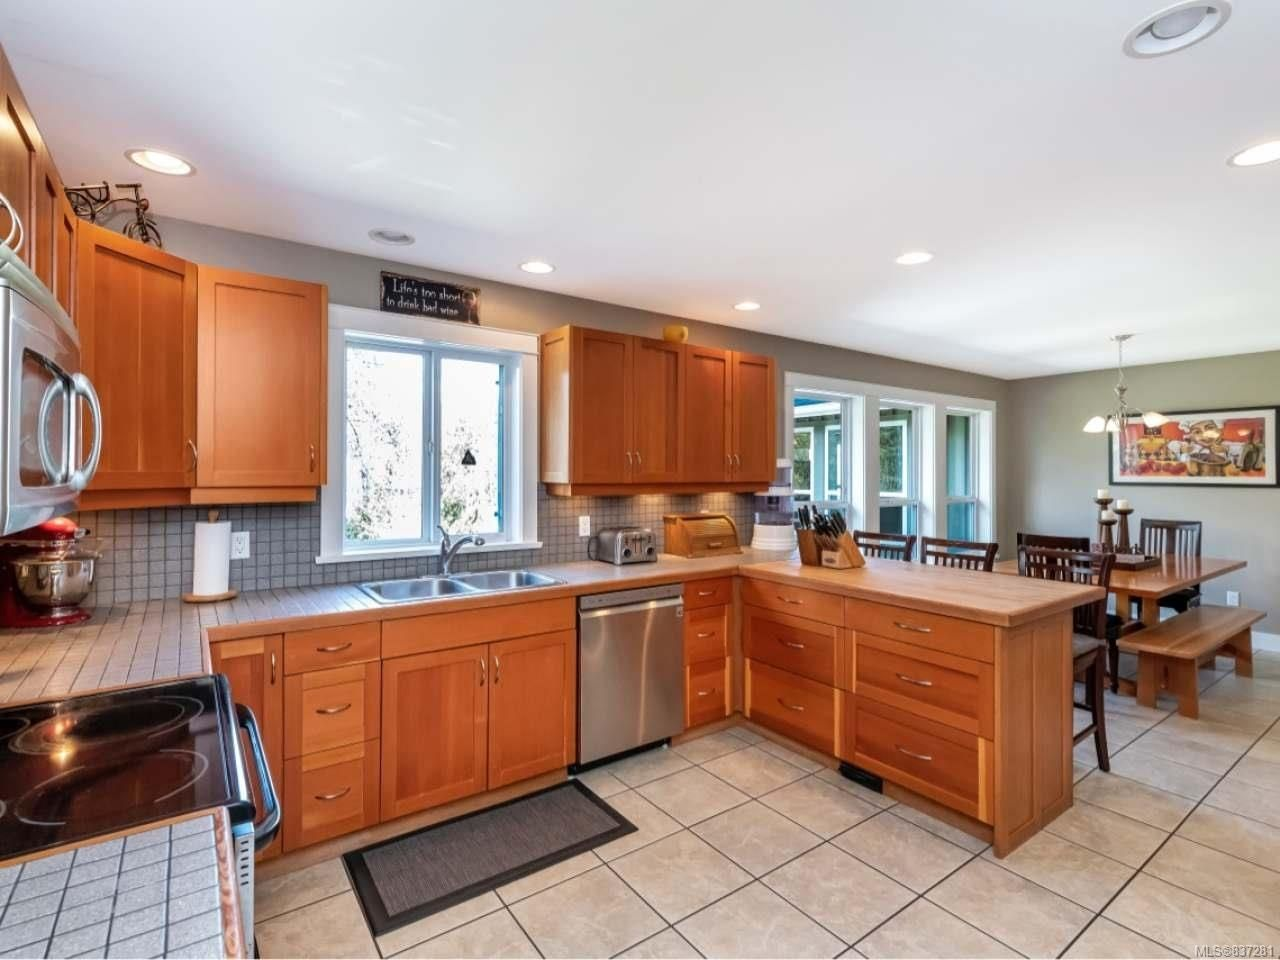 Photo 4: Photos: 925 Lilmac Rd in MILL BAY: ML Mill Bay House for sale (Malahat & Area)  : MLS®# 837281